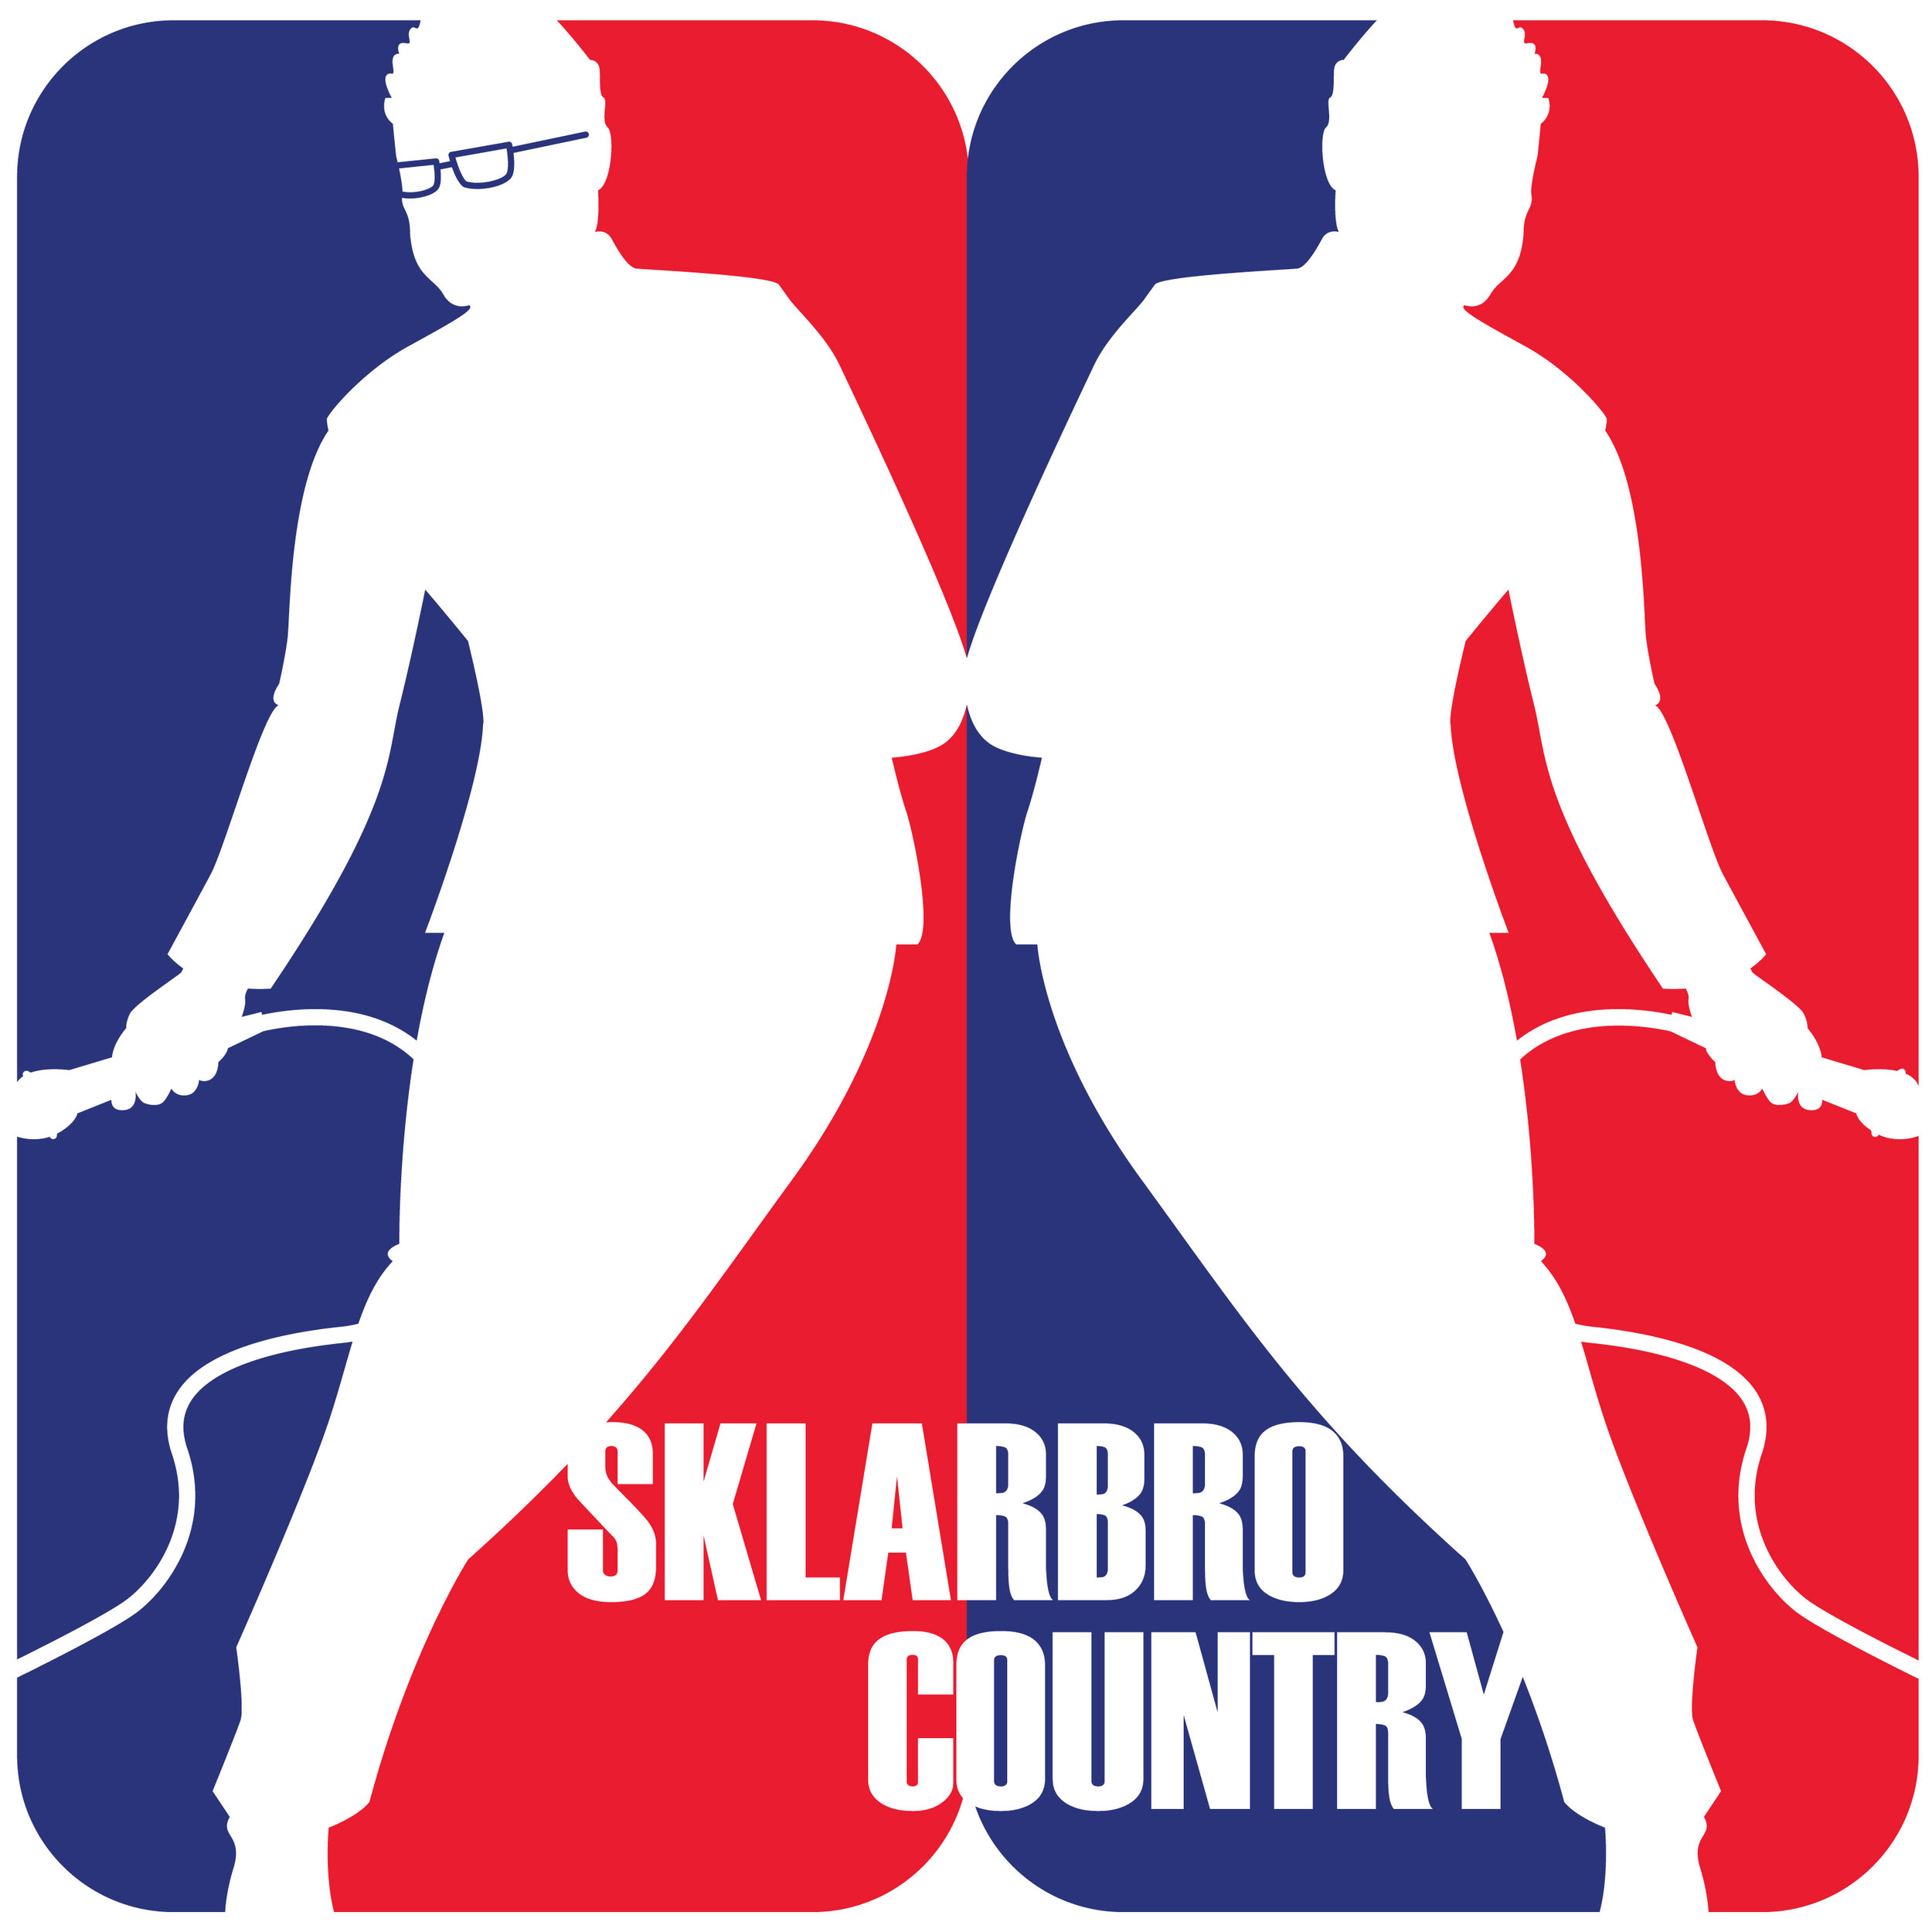 Sklarbro Country#103 Monkey Trumpet(July 13th, 2012) - Konichiwa! Between the bath salts diet and strip club lap sores, we're keeping it health concious on the calming shores. Janet Varney joins us to discuss online gambling, cherry spitting, and topless TV scenes. Plus, a Sklarbro Country first! We have Steven Seagal on the line!